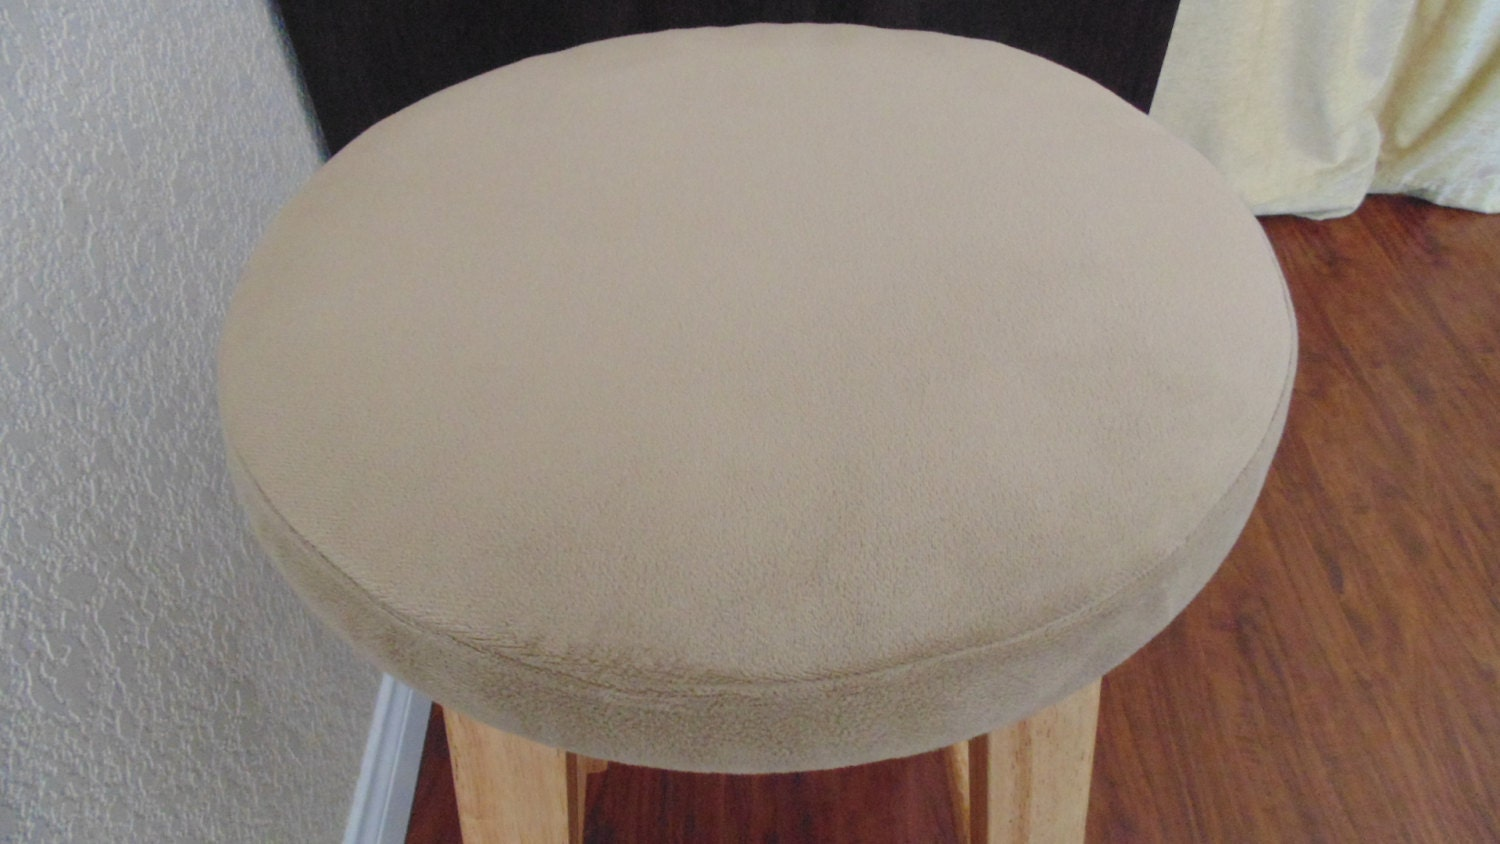 Bar Stool CoverTan Velvet 12131415round by BestFit on Etsy : ilfullxfull609100381tqym from etsy.com size 1500 x 844 jpeg 195kB